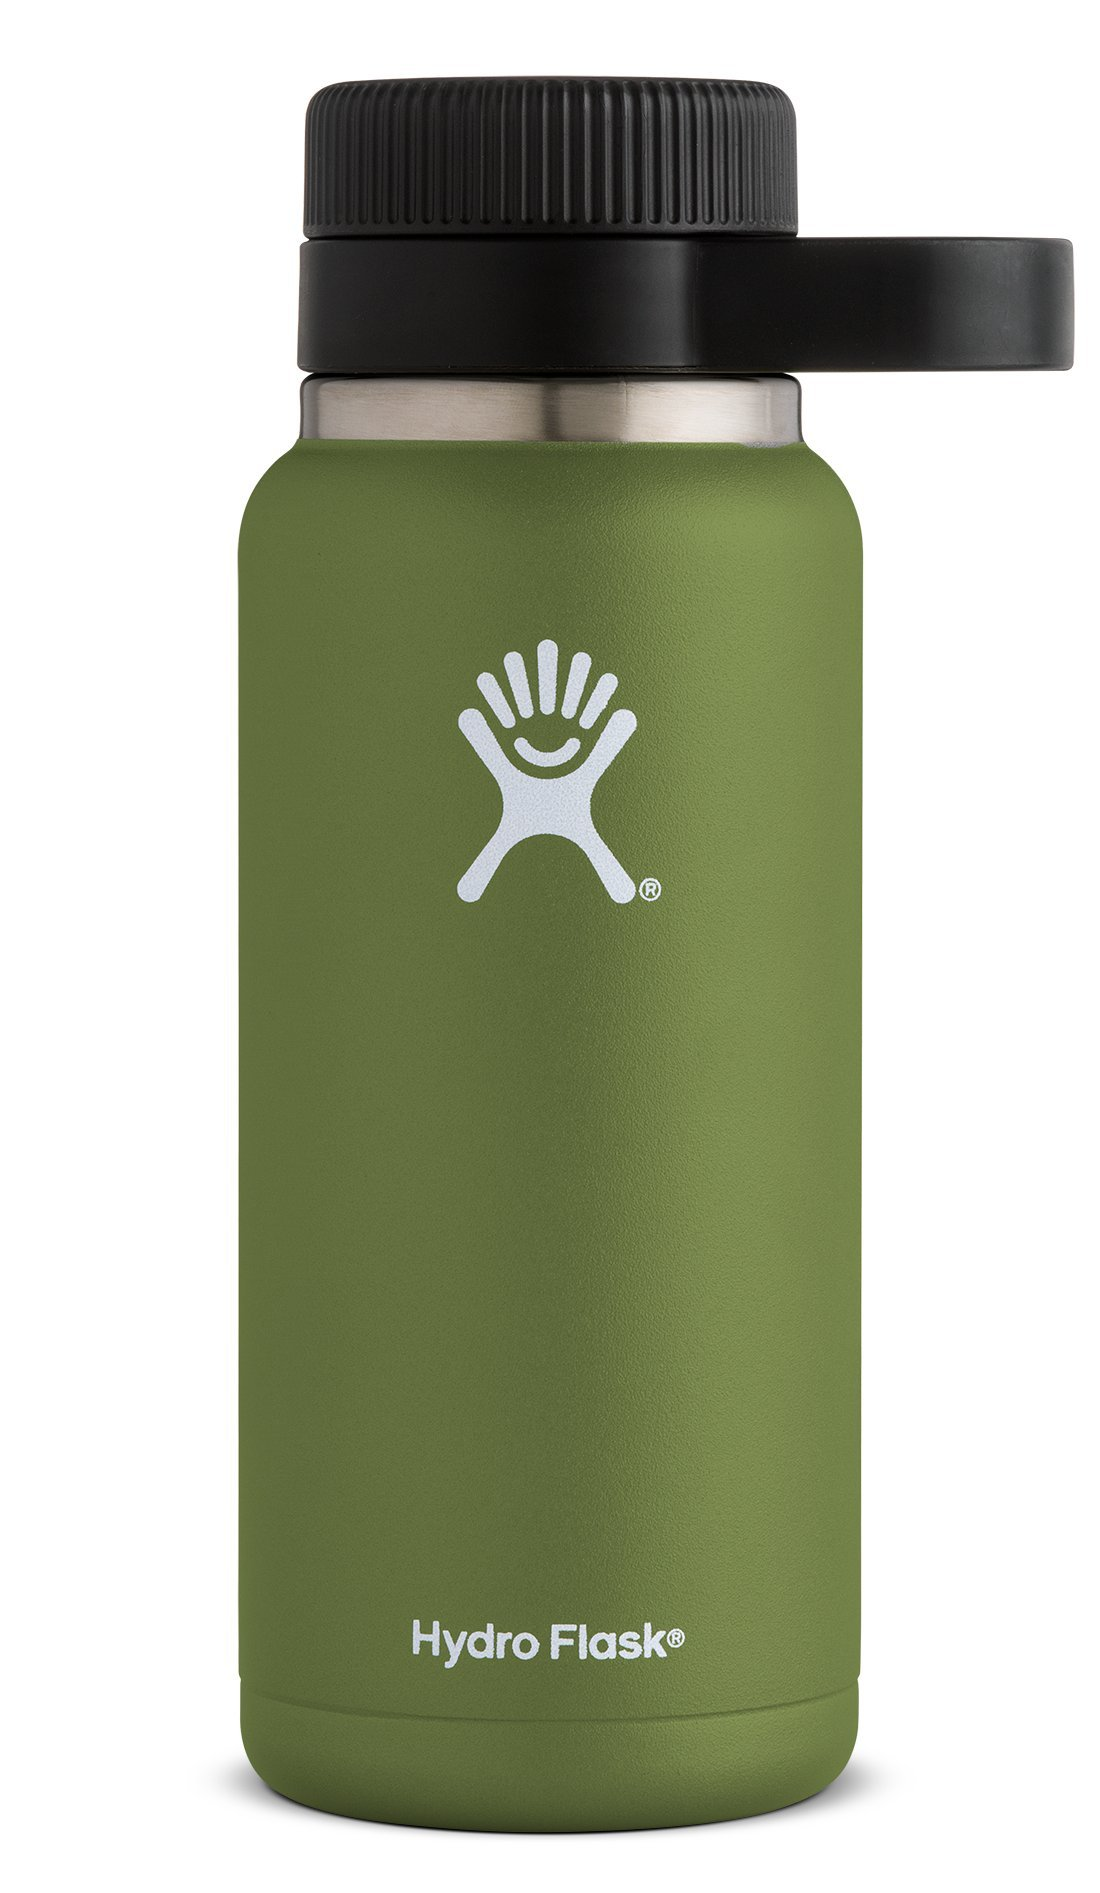 Hydro Flask 32 oz Double Wall Vacuum Insulated Stainless Steel Beer Howler, Olive